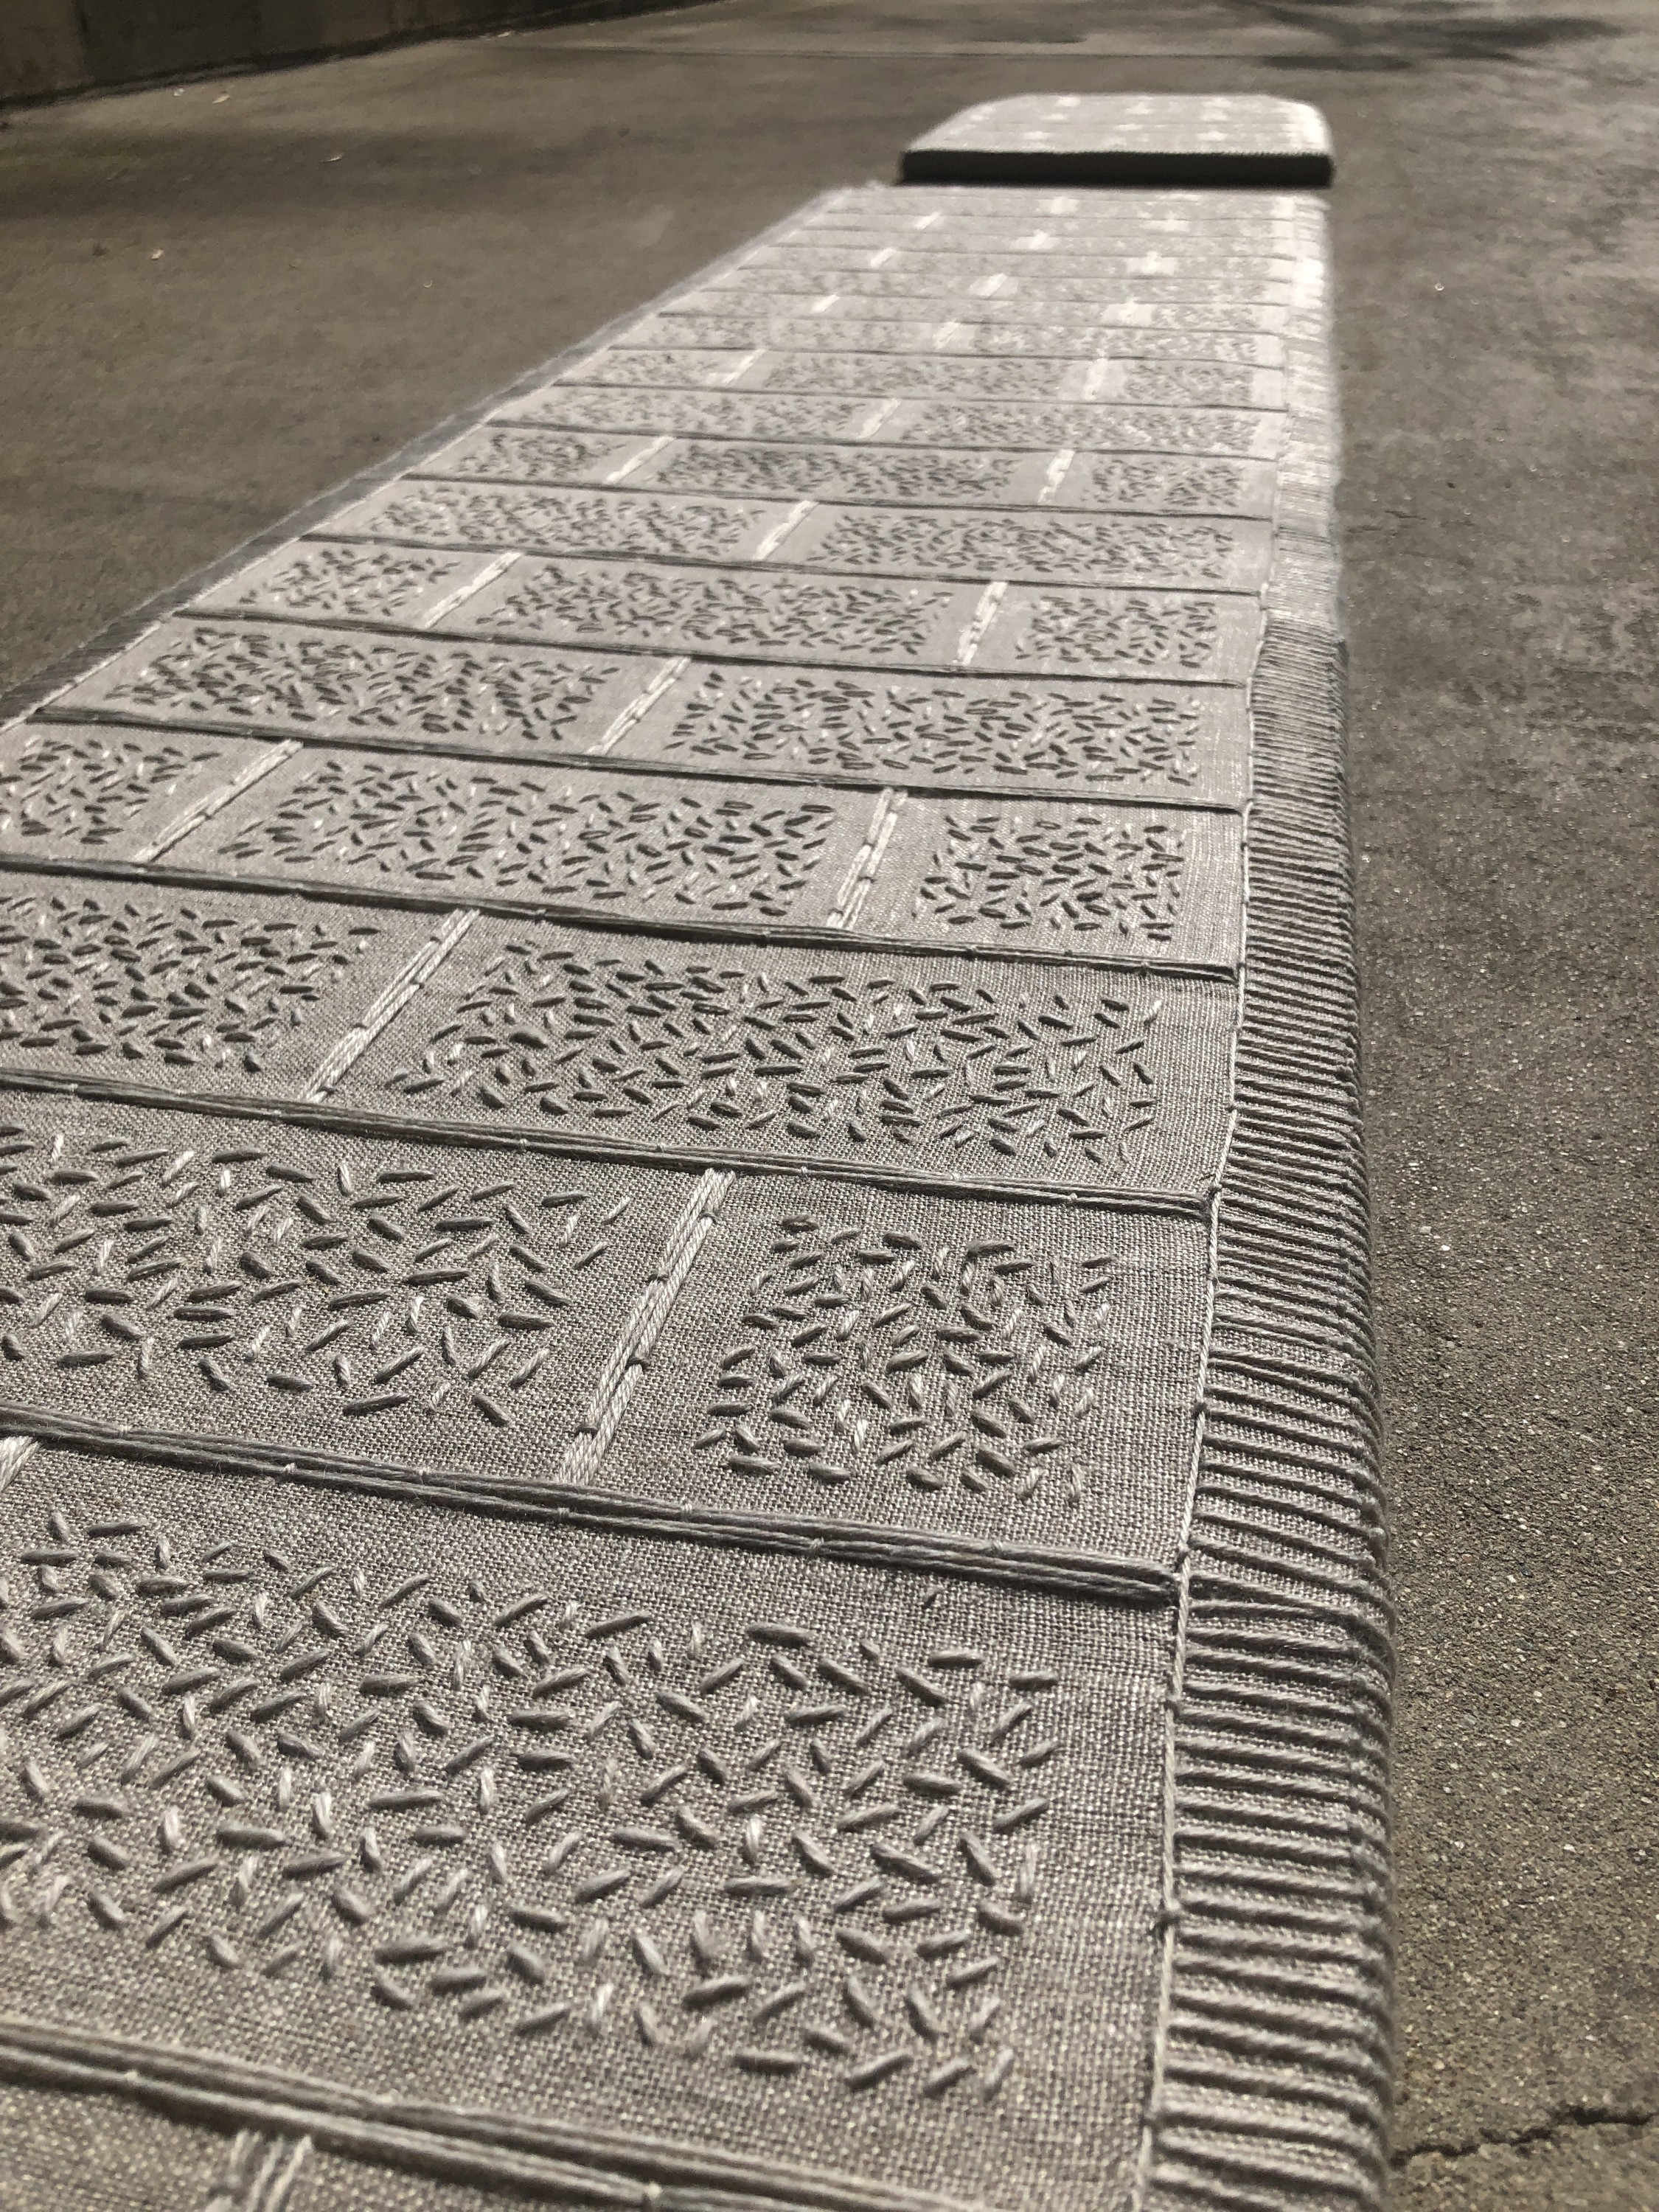 Traffic Island is a reconstruction of an intersection island. The piece is made of two main slabs of embroidered rectangular piecework wrapped around a solid backing. The pieces together resemble the object they were modeled from but differ in function an